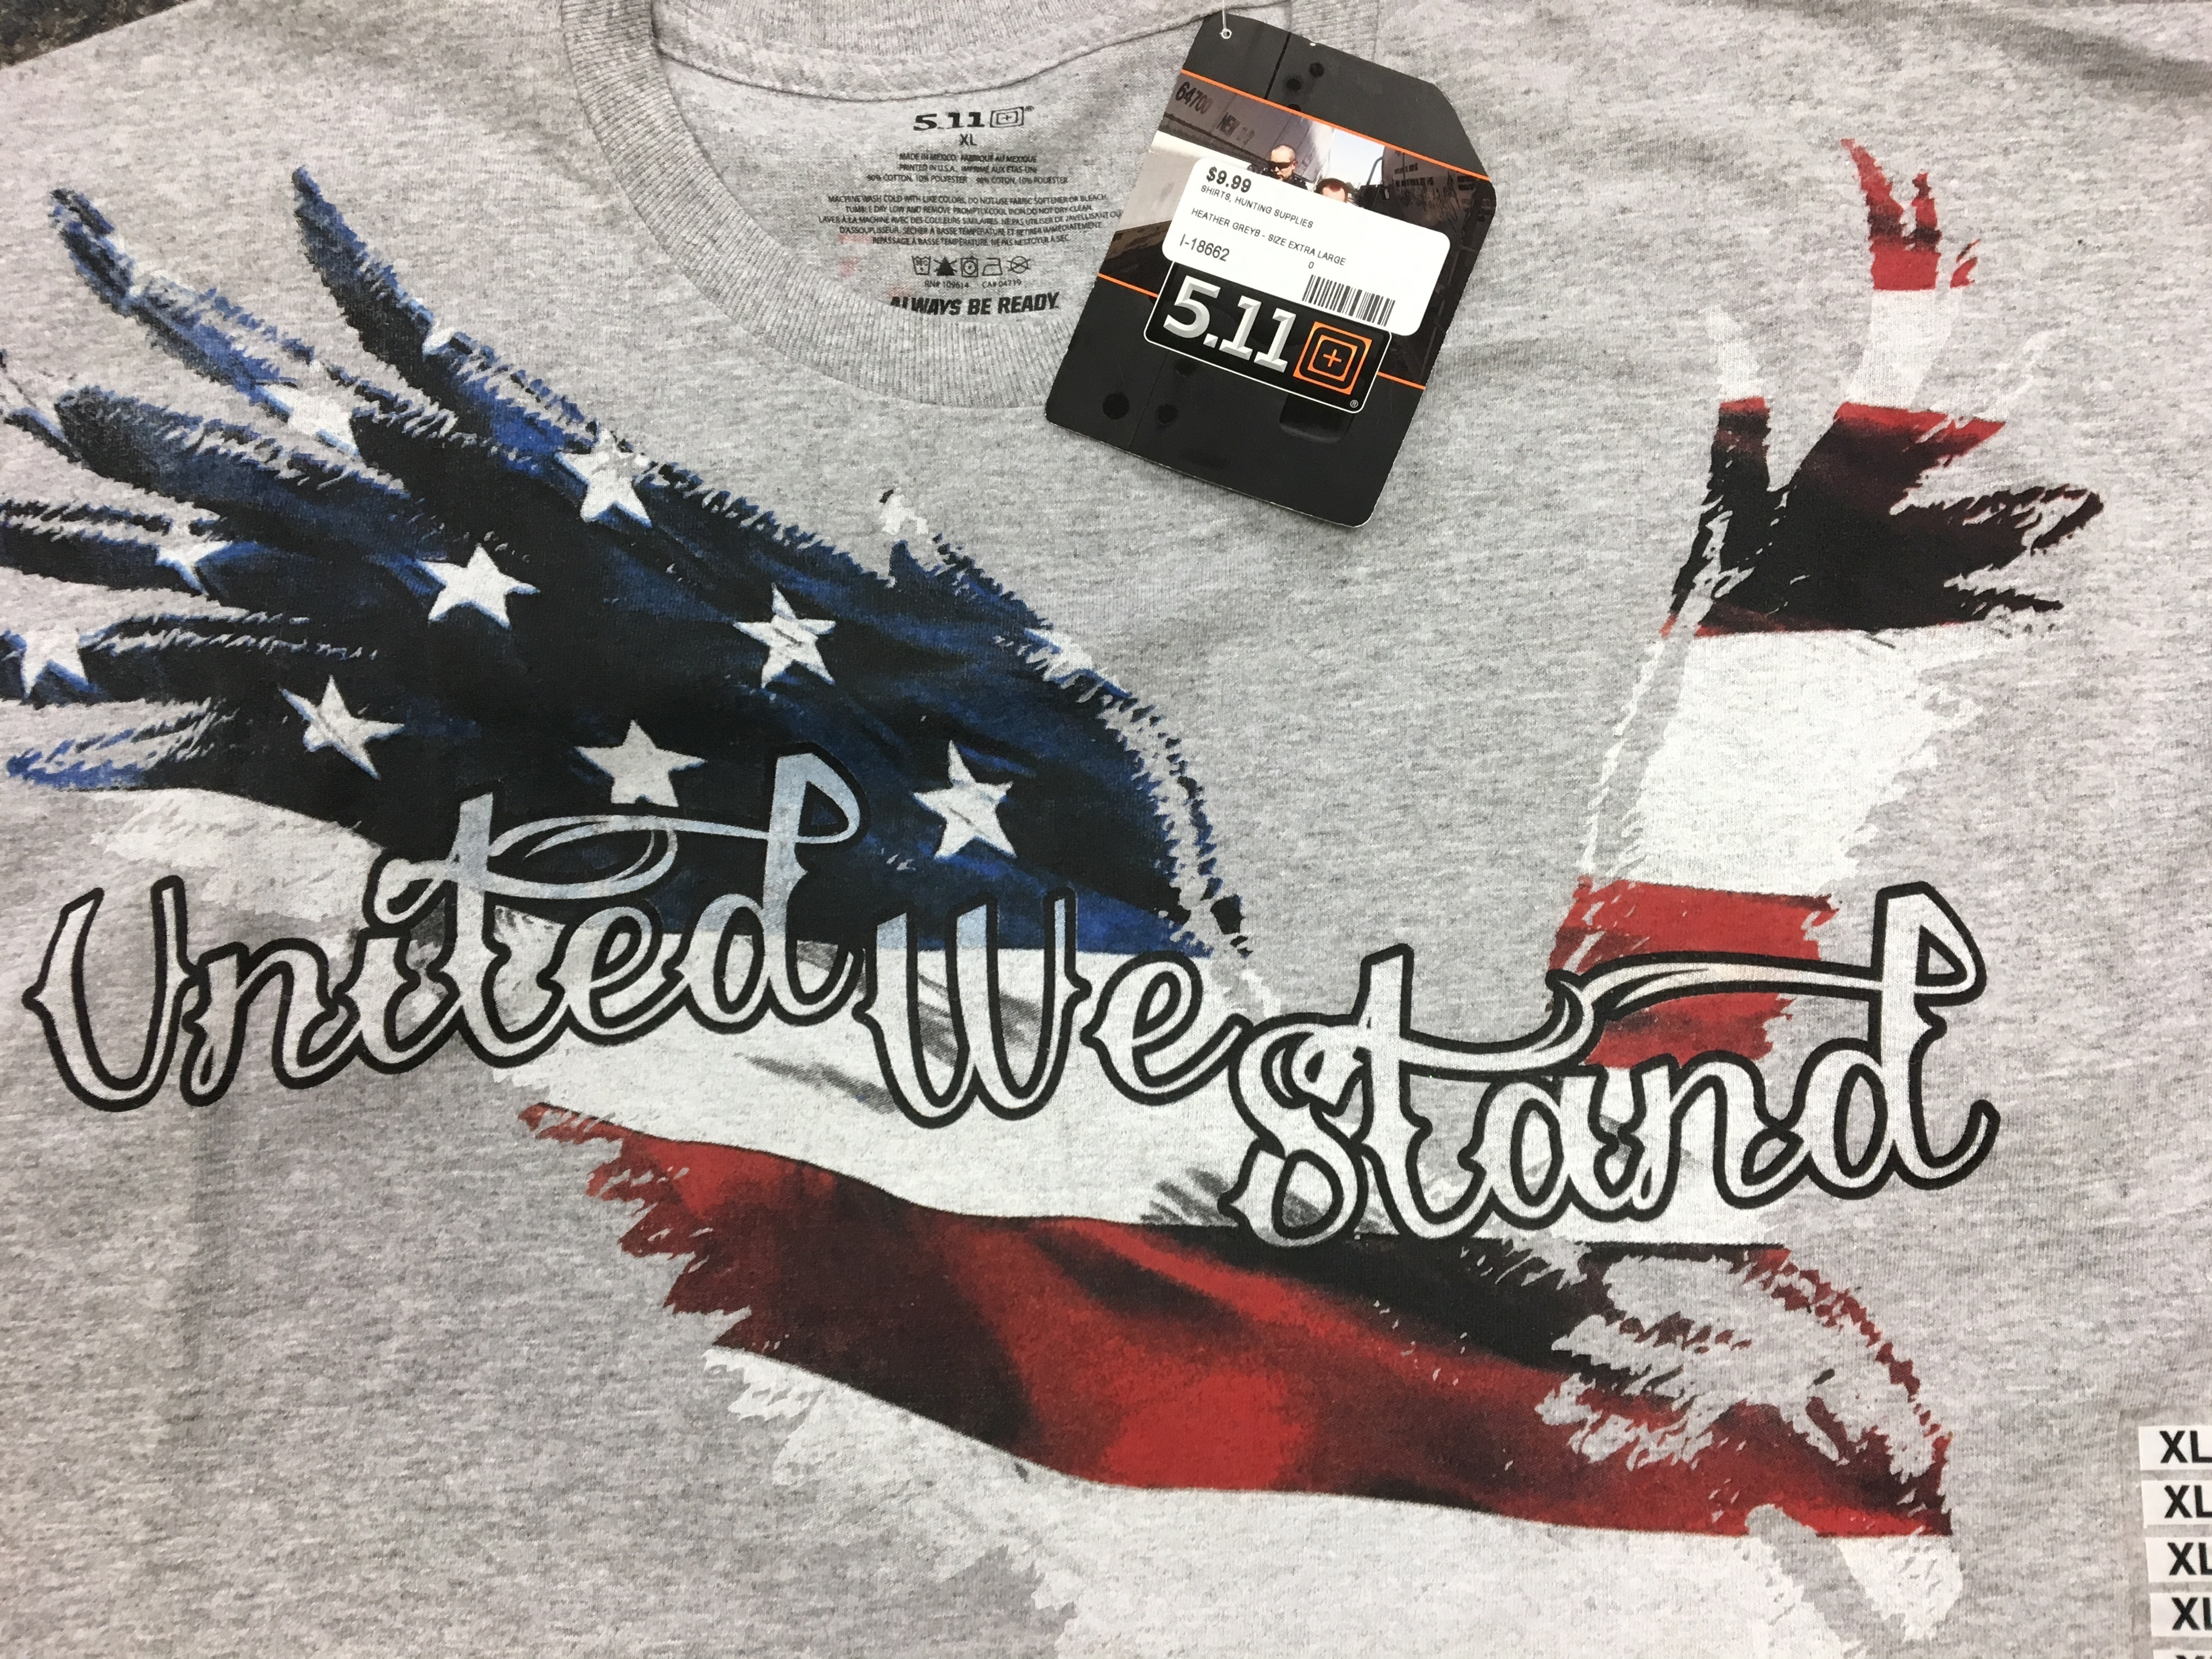 5.11 TACTICAL GEAR - UNITED WE STAND XL T-SHIRT